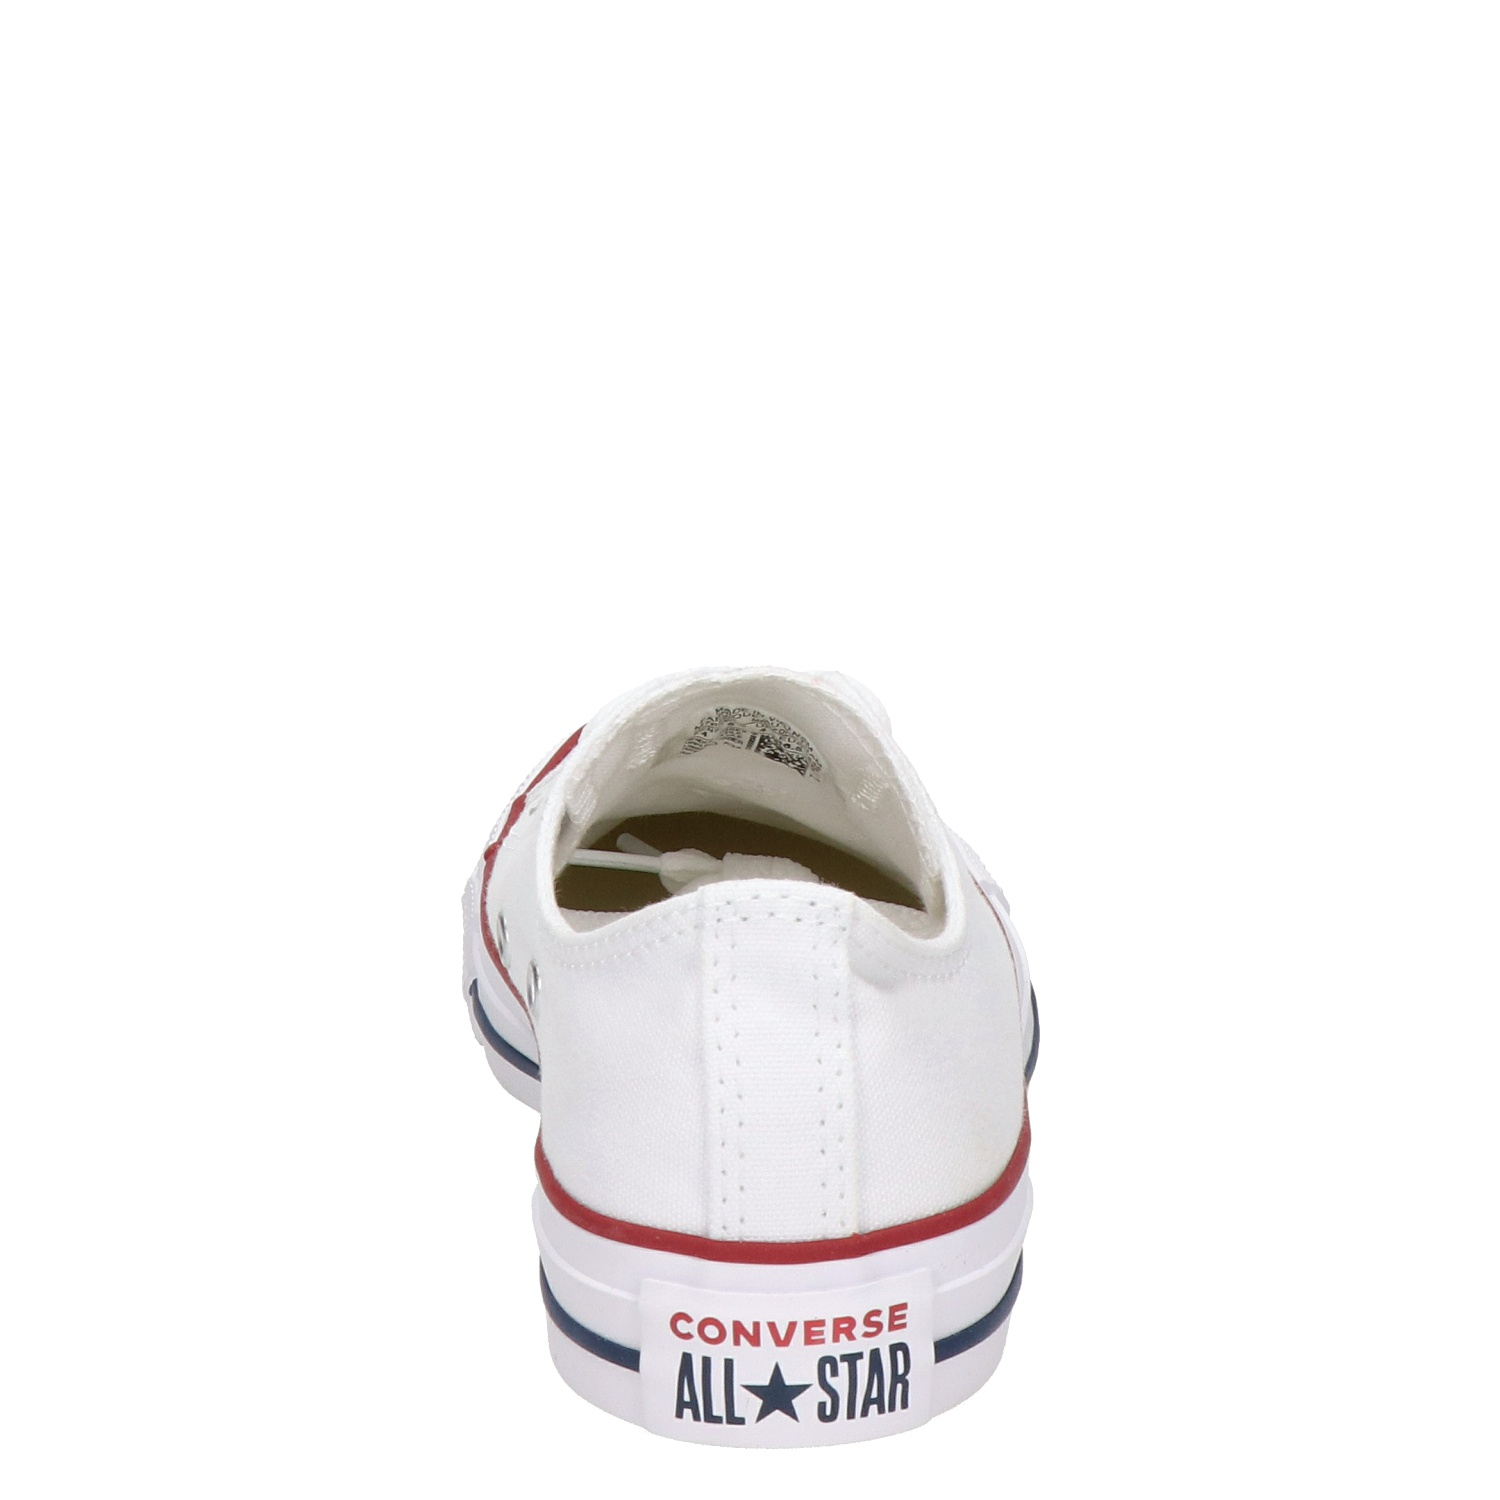 9faaa523480 Converse All Star unisex lage sneakers wit